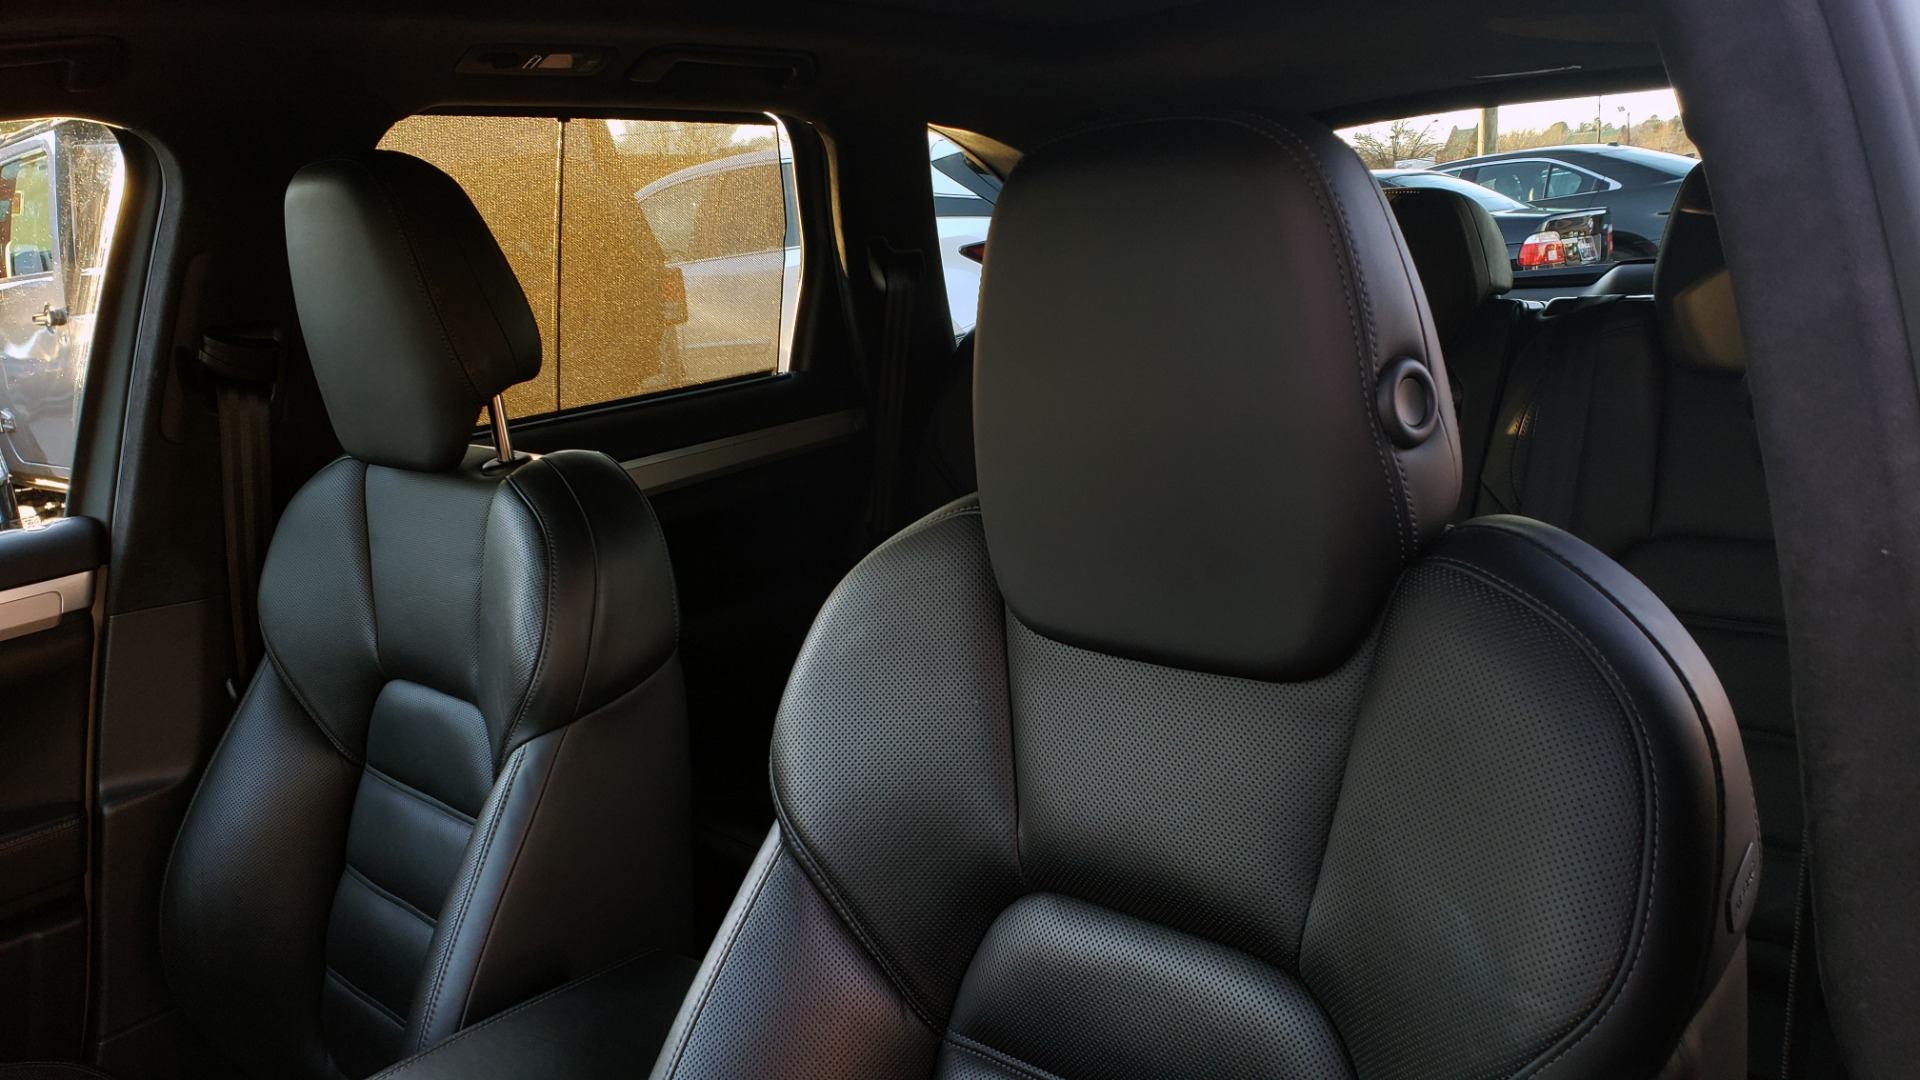 Used 2015 Porsche CAYENNE TURBO V8 / PREMIUM / NAV / SUNROOF / PARK ASSIST / LCA / REARVIEW for sale $47,995 at Formula Imports in Charlotte NC 28227 56